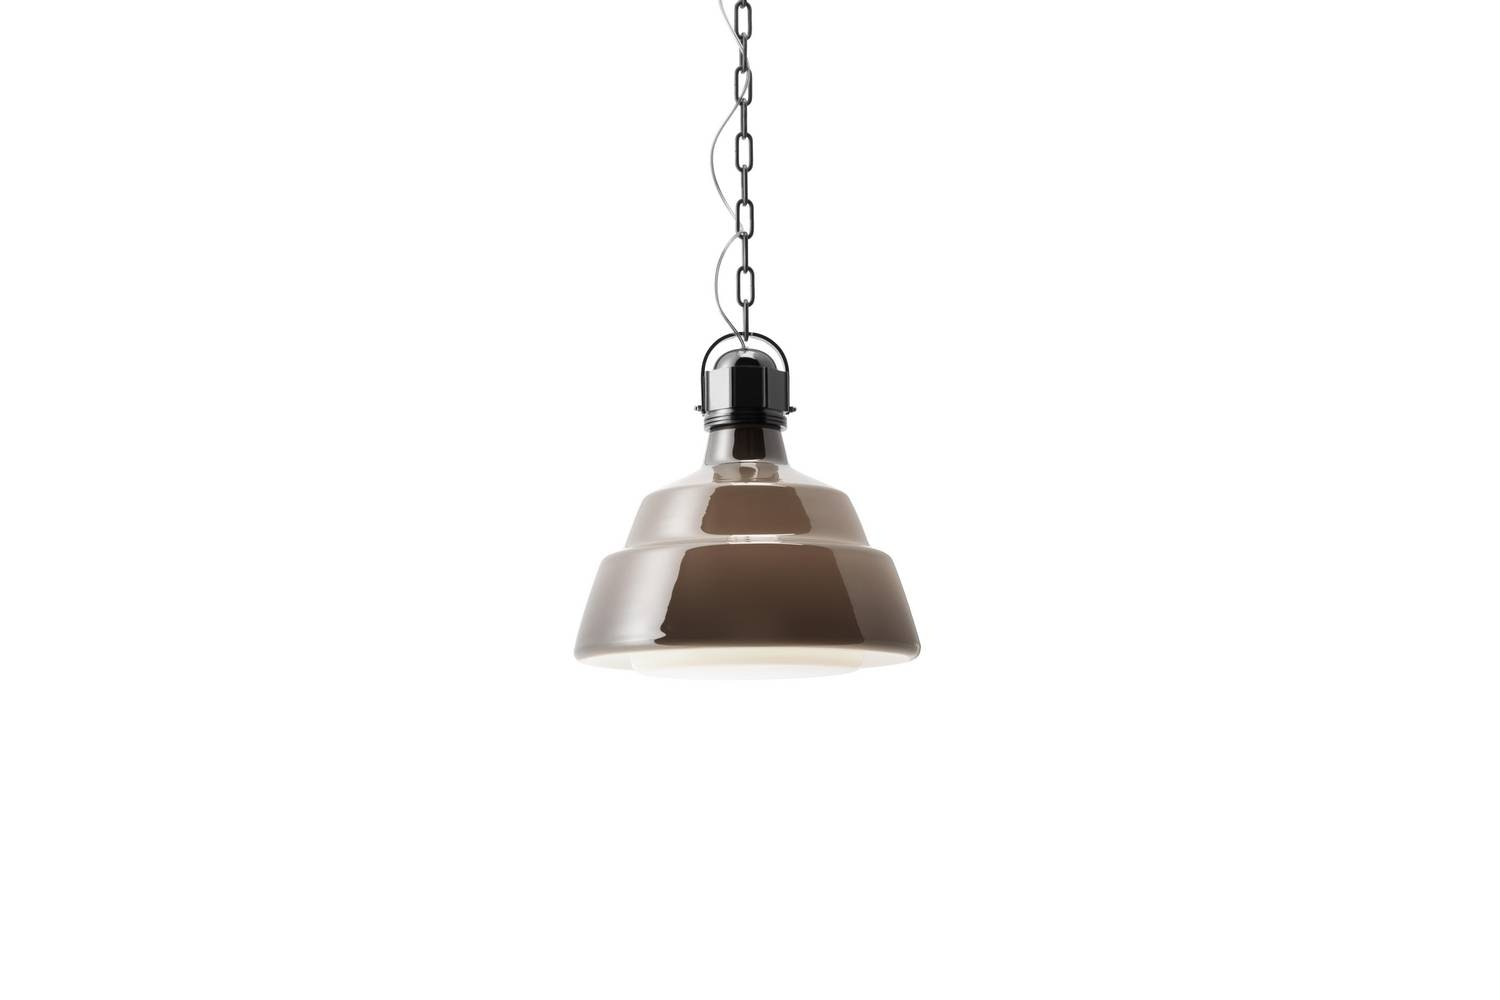 Glas Grande Suspension Lamp by Successful Living from DIESEL for Foscarini